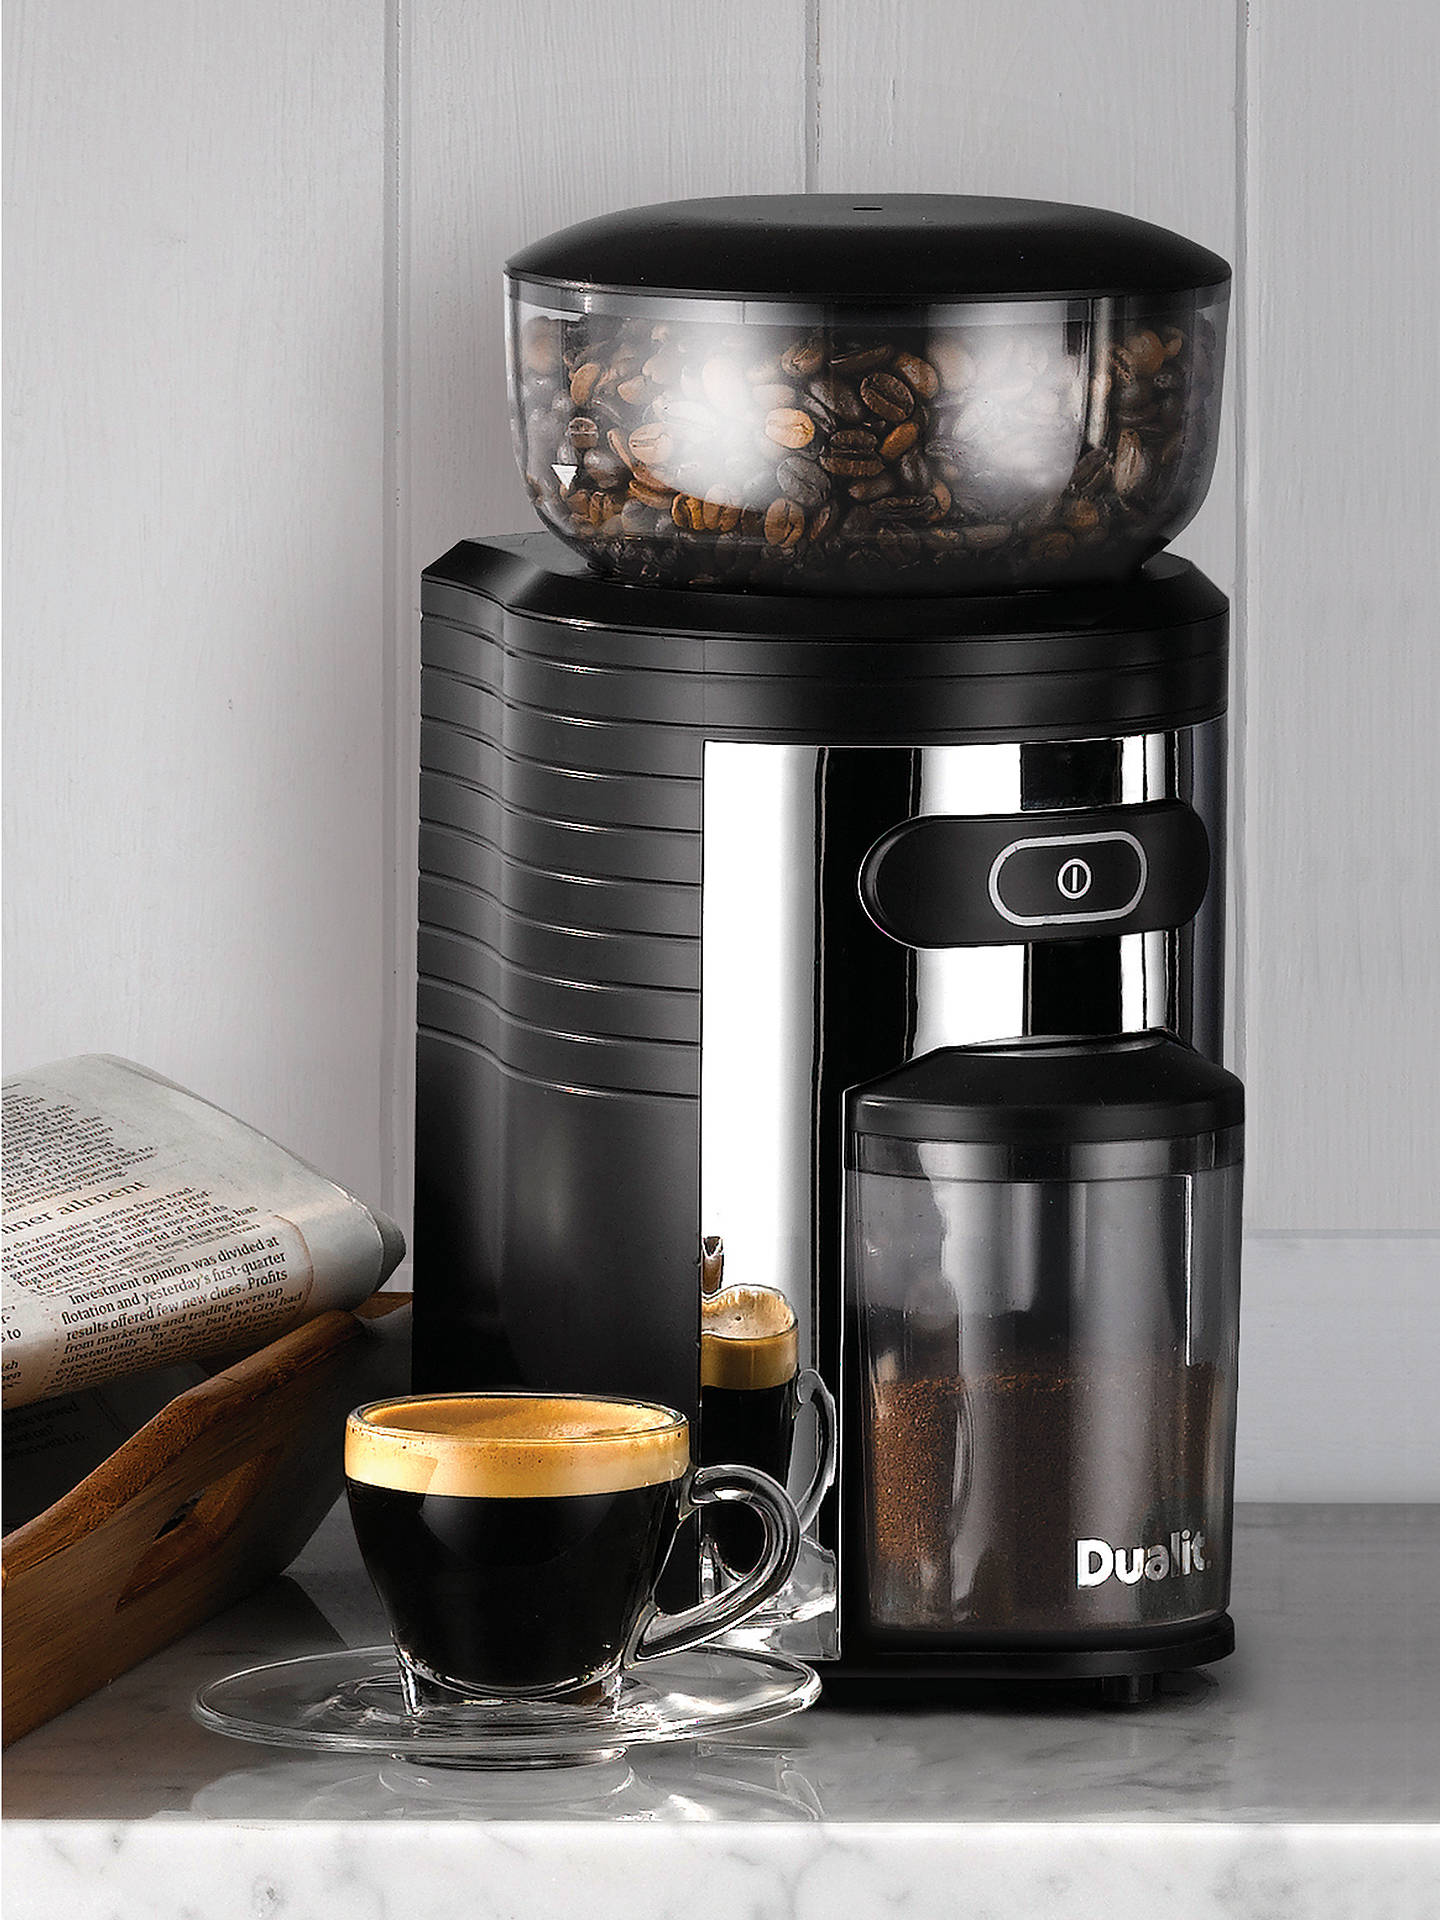 BuyDualit Burr Coffee Grinder Online at johnlewis.com